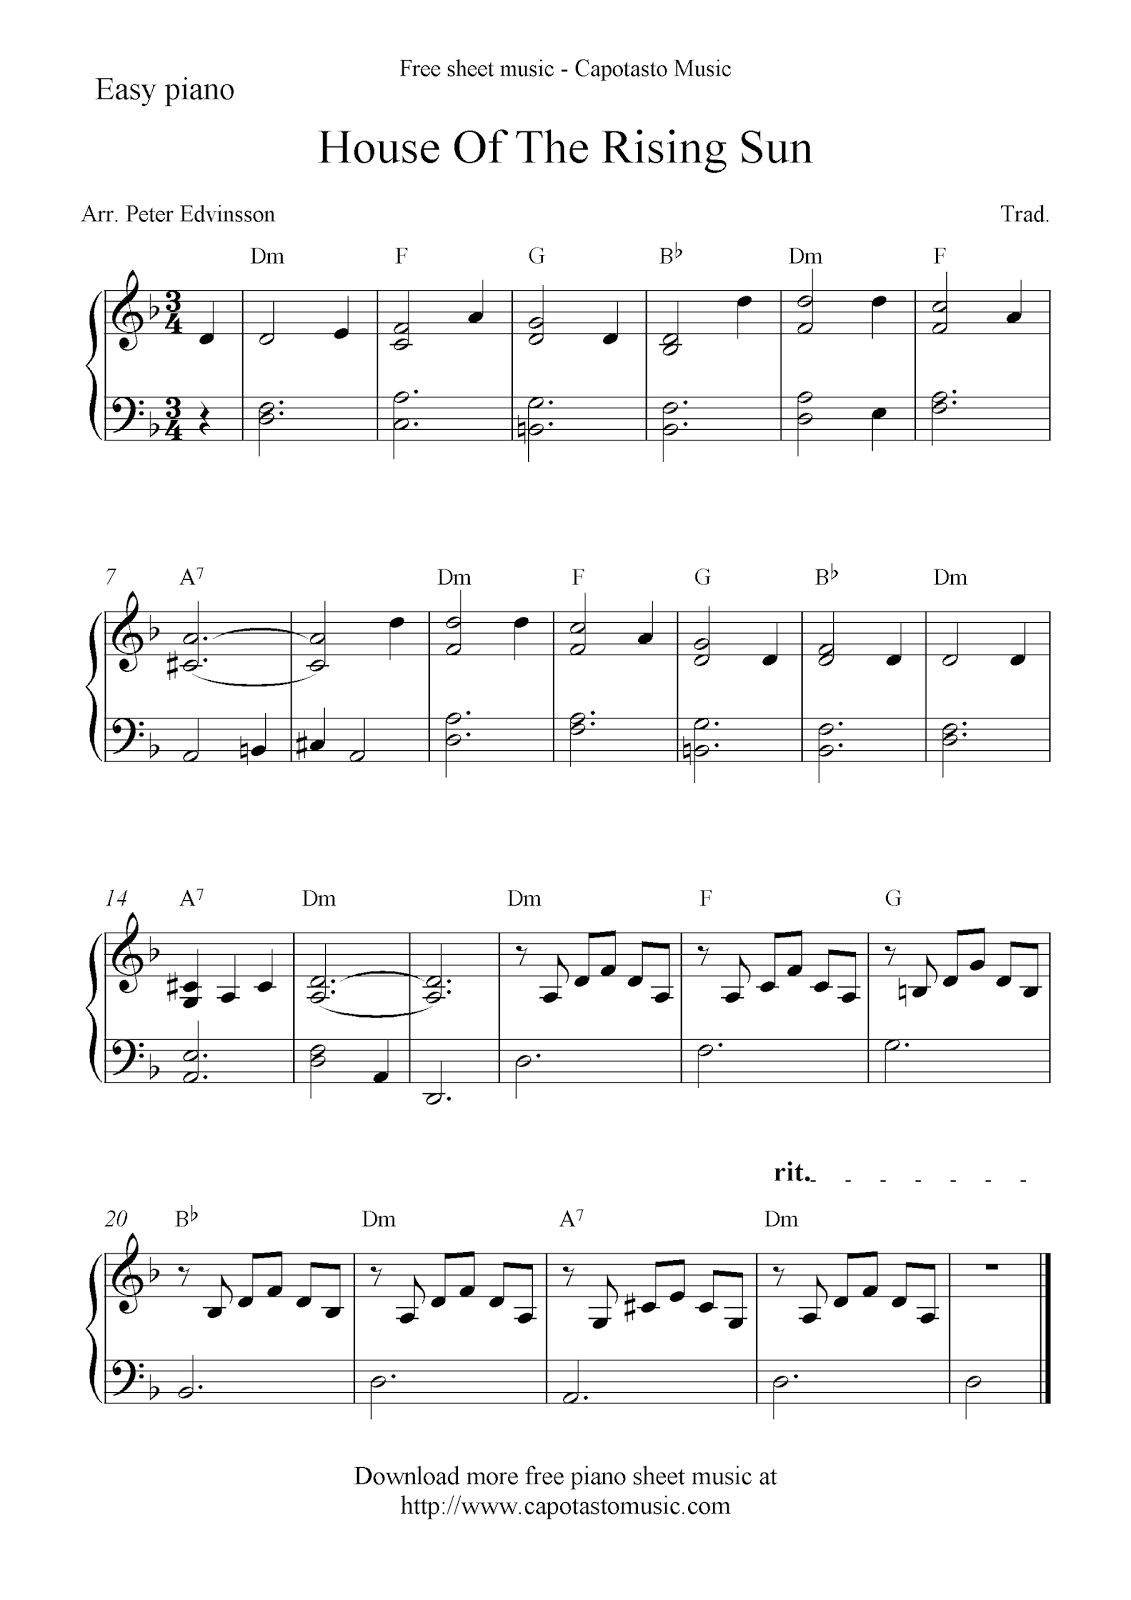 Free Sheet Music Scores: Free piano sheet music score, House Of The Rising Sun #pianomusic